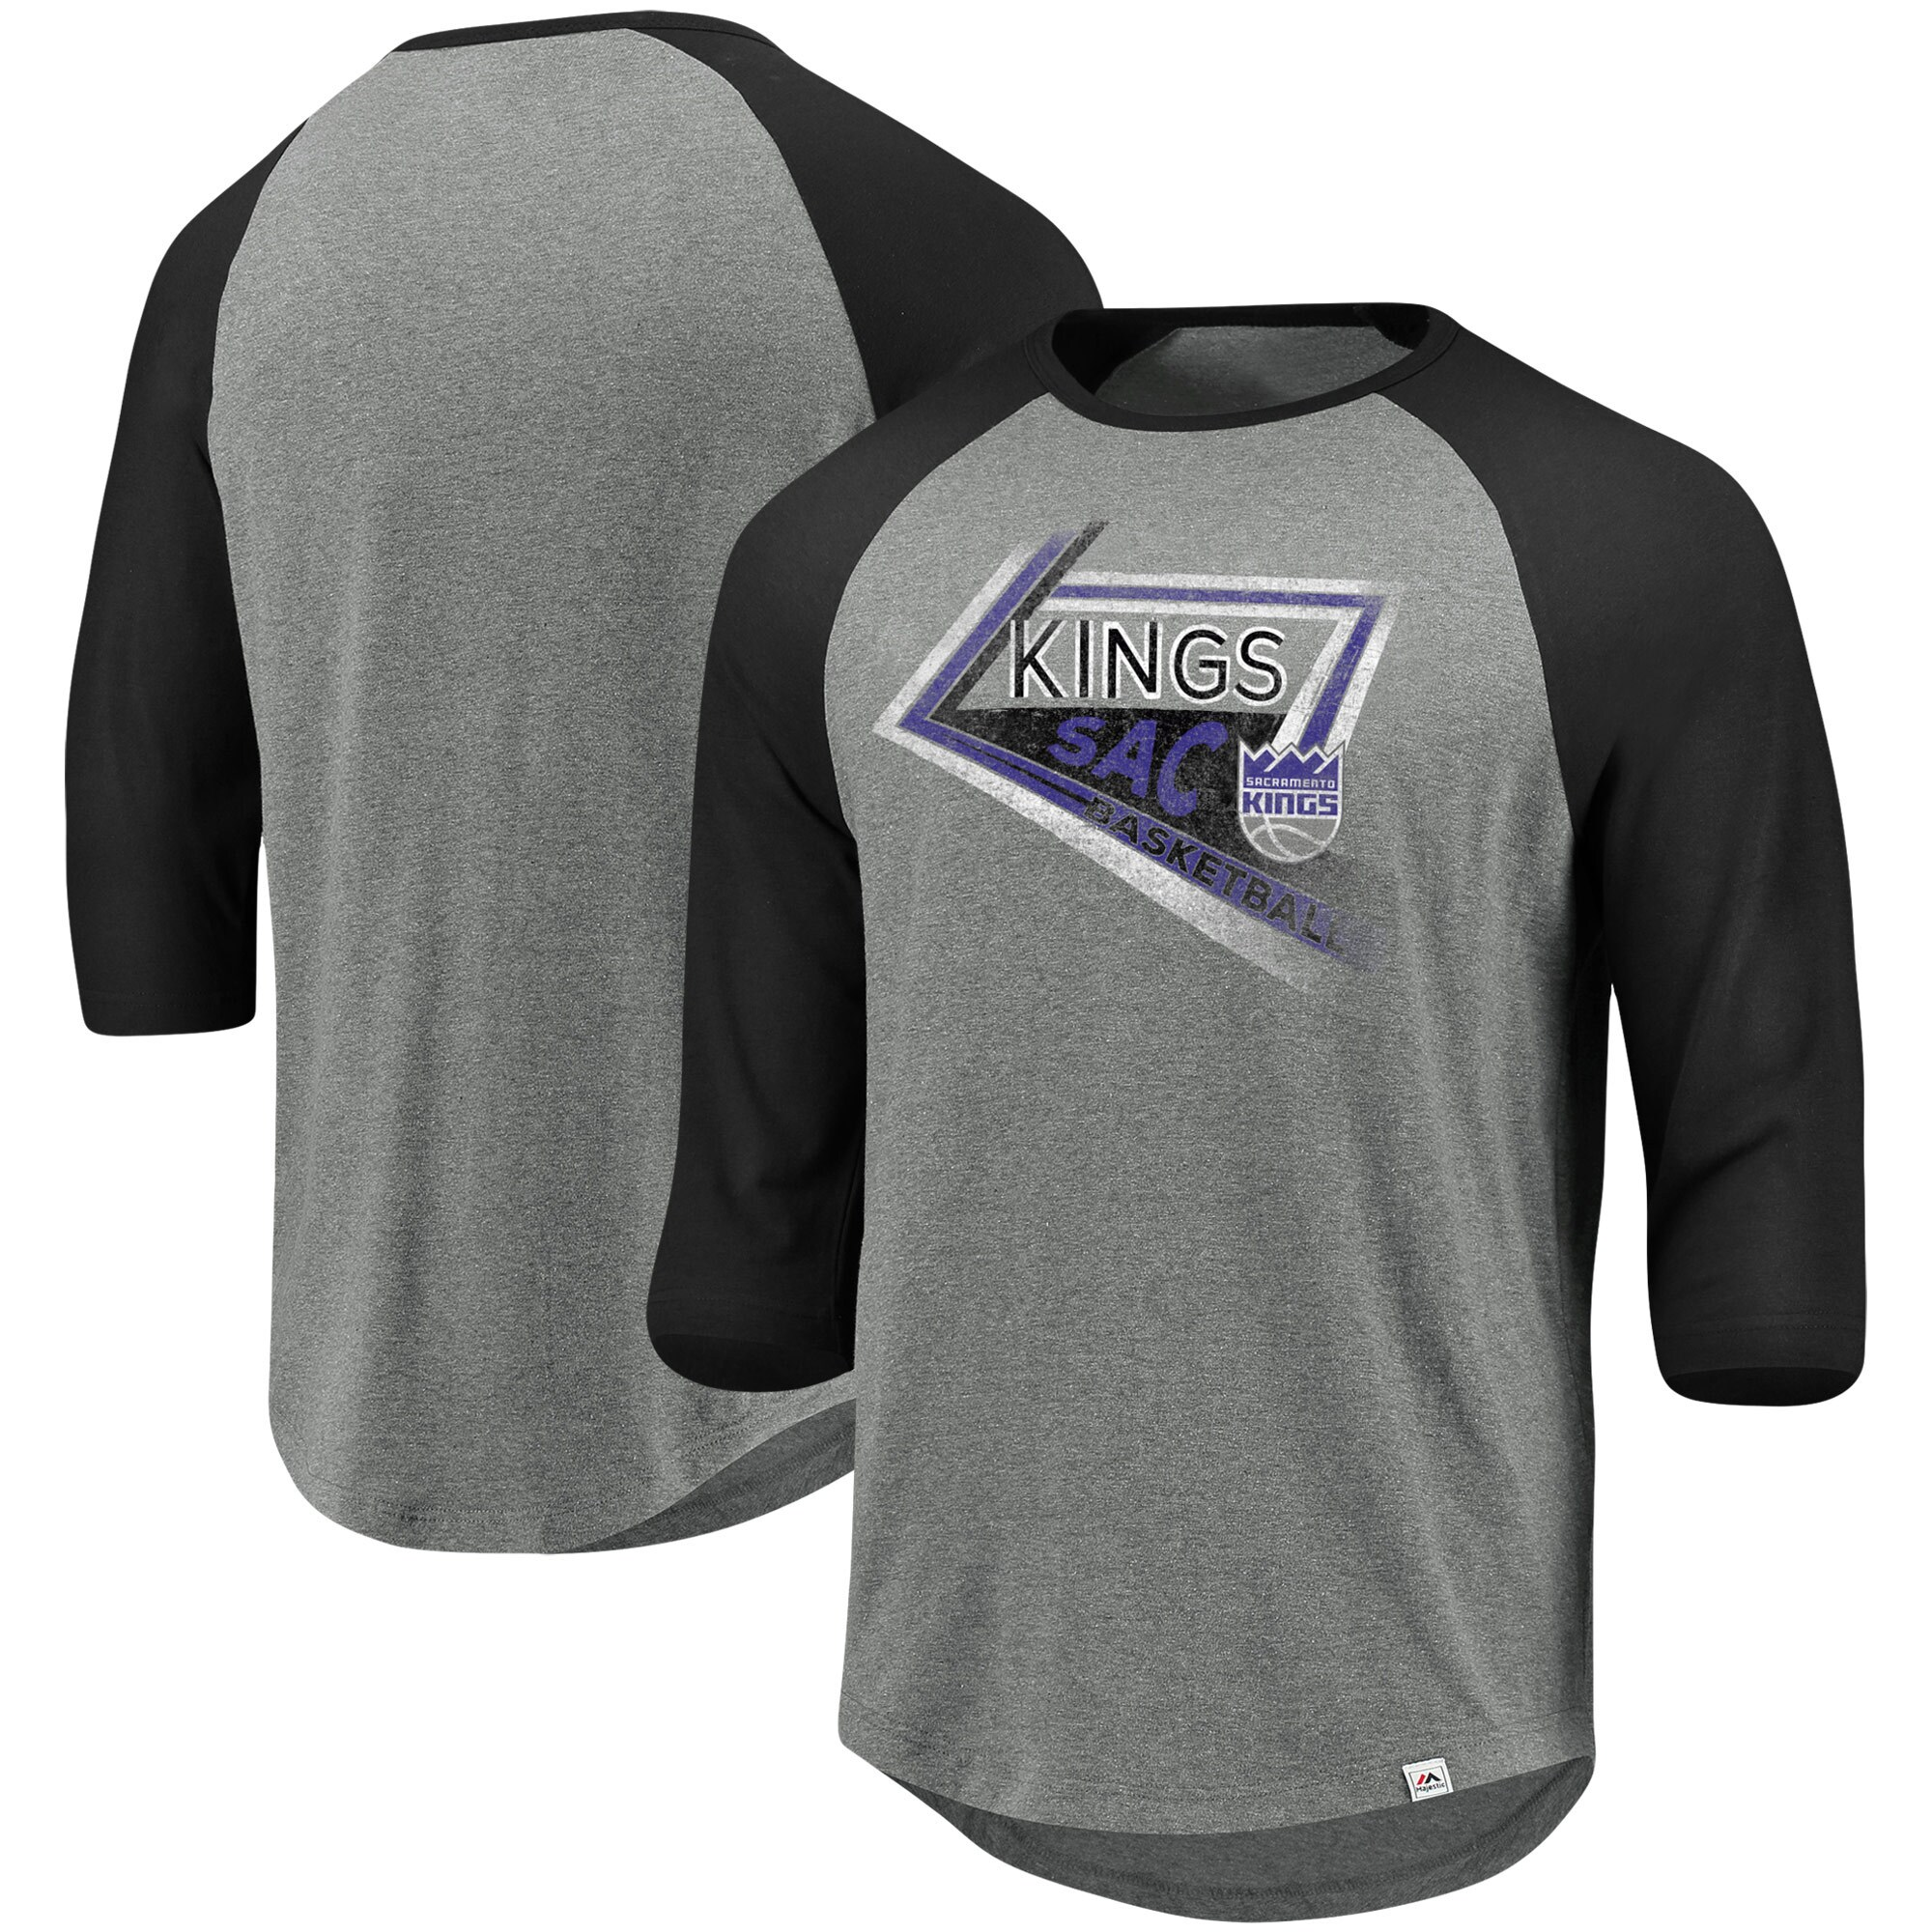 Sacramento Kings Majestic Scoring Position Tri-Blend 3/4-Sleeve Raglan T-Shirt - Heathered Gray/Black